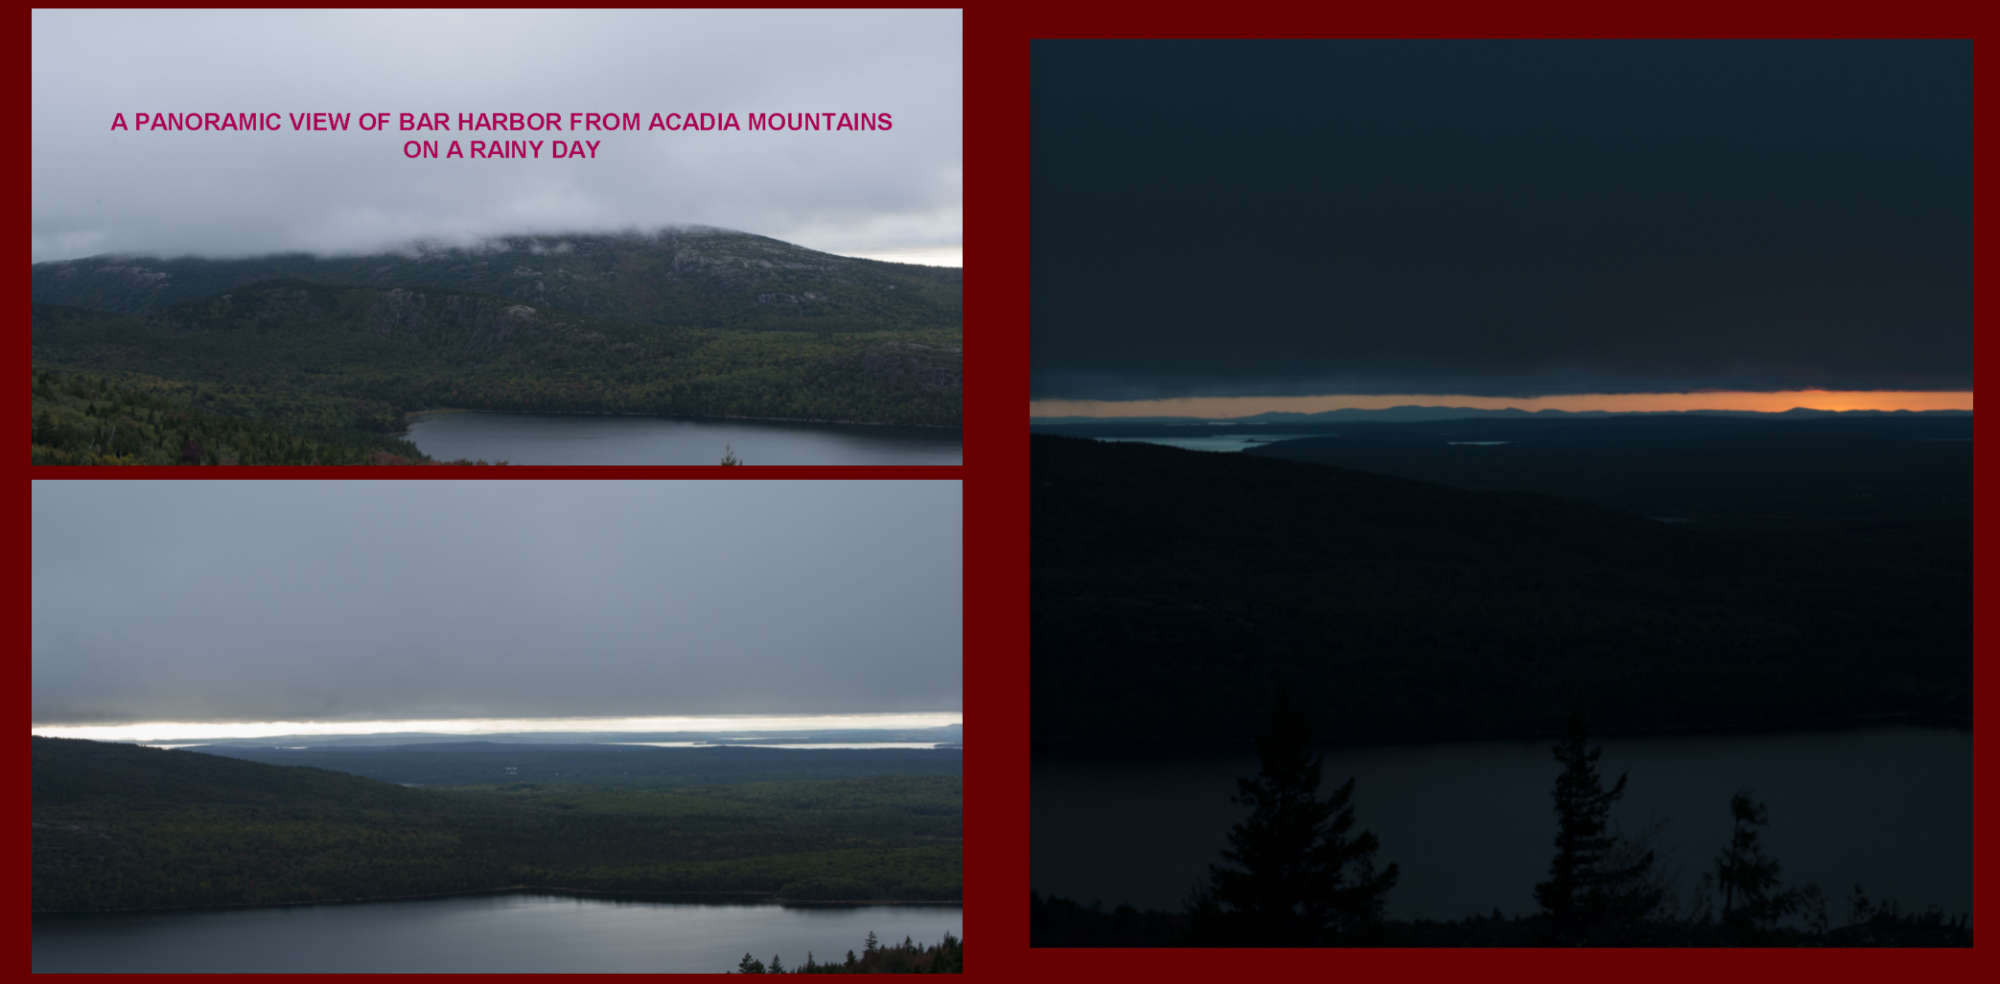 Fall in New-England Album - Pages 30-31 - A view of Acadia Mountains at sunset